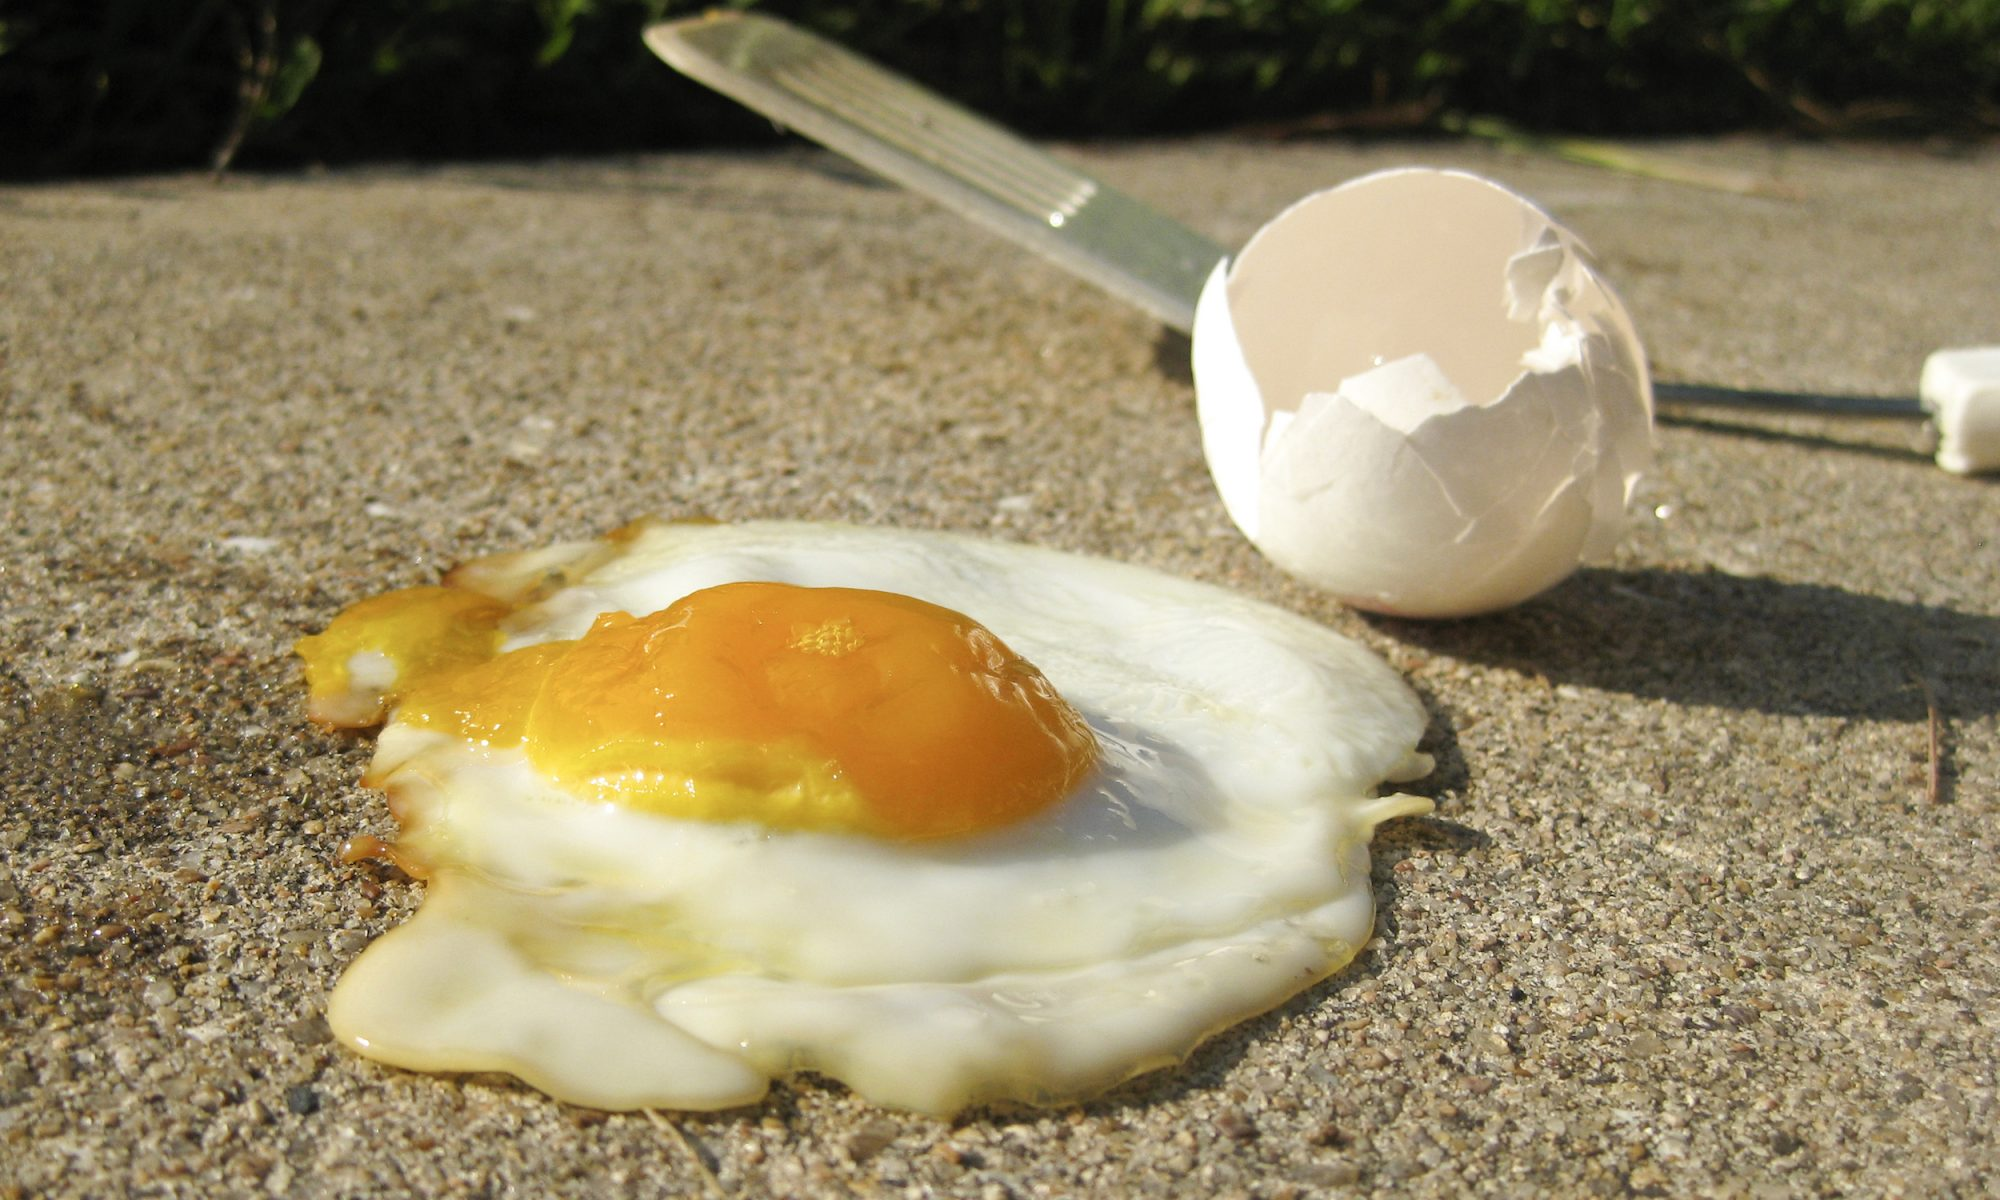 Fried egg on sidewalk